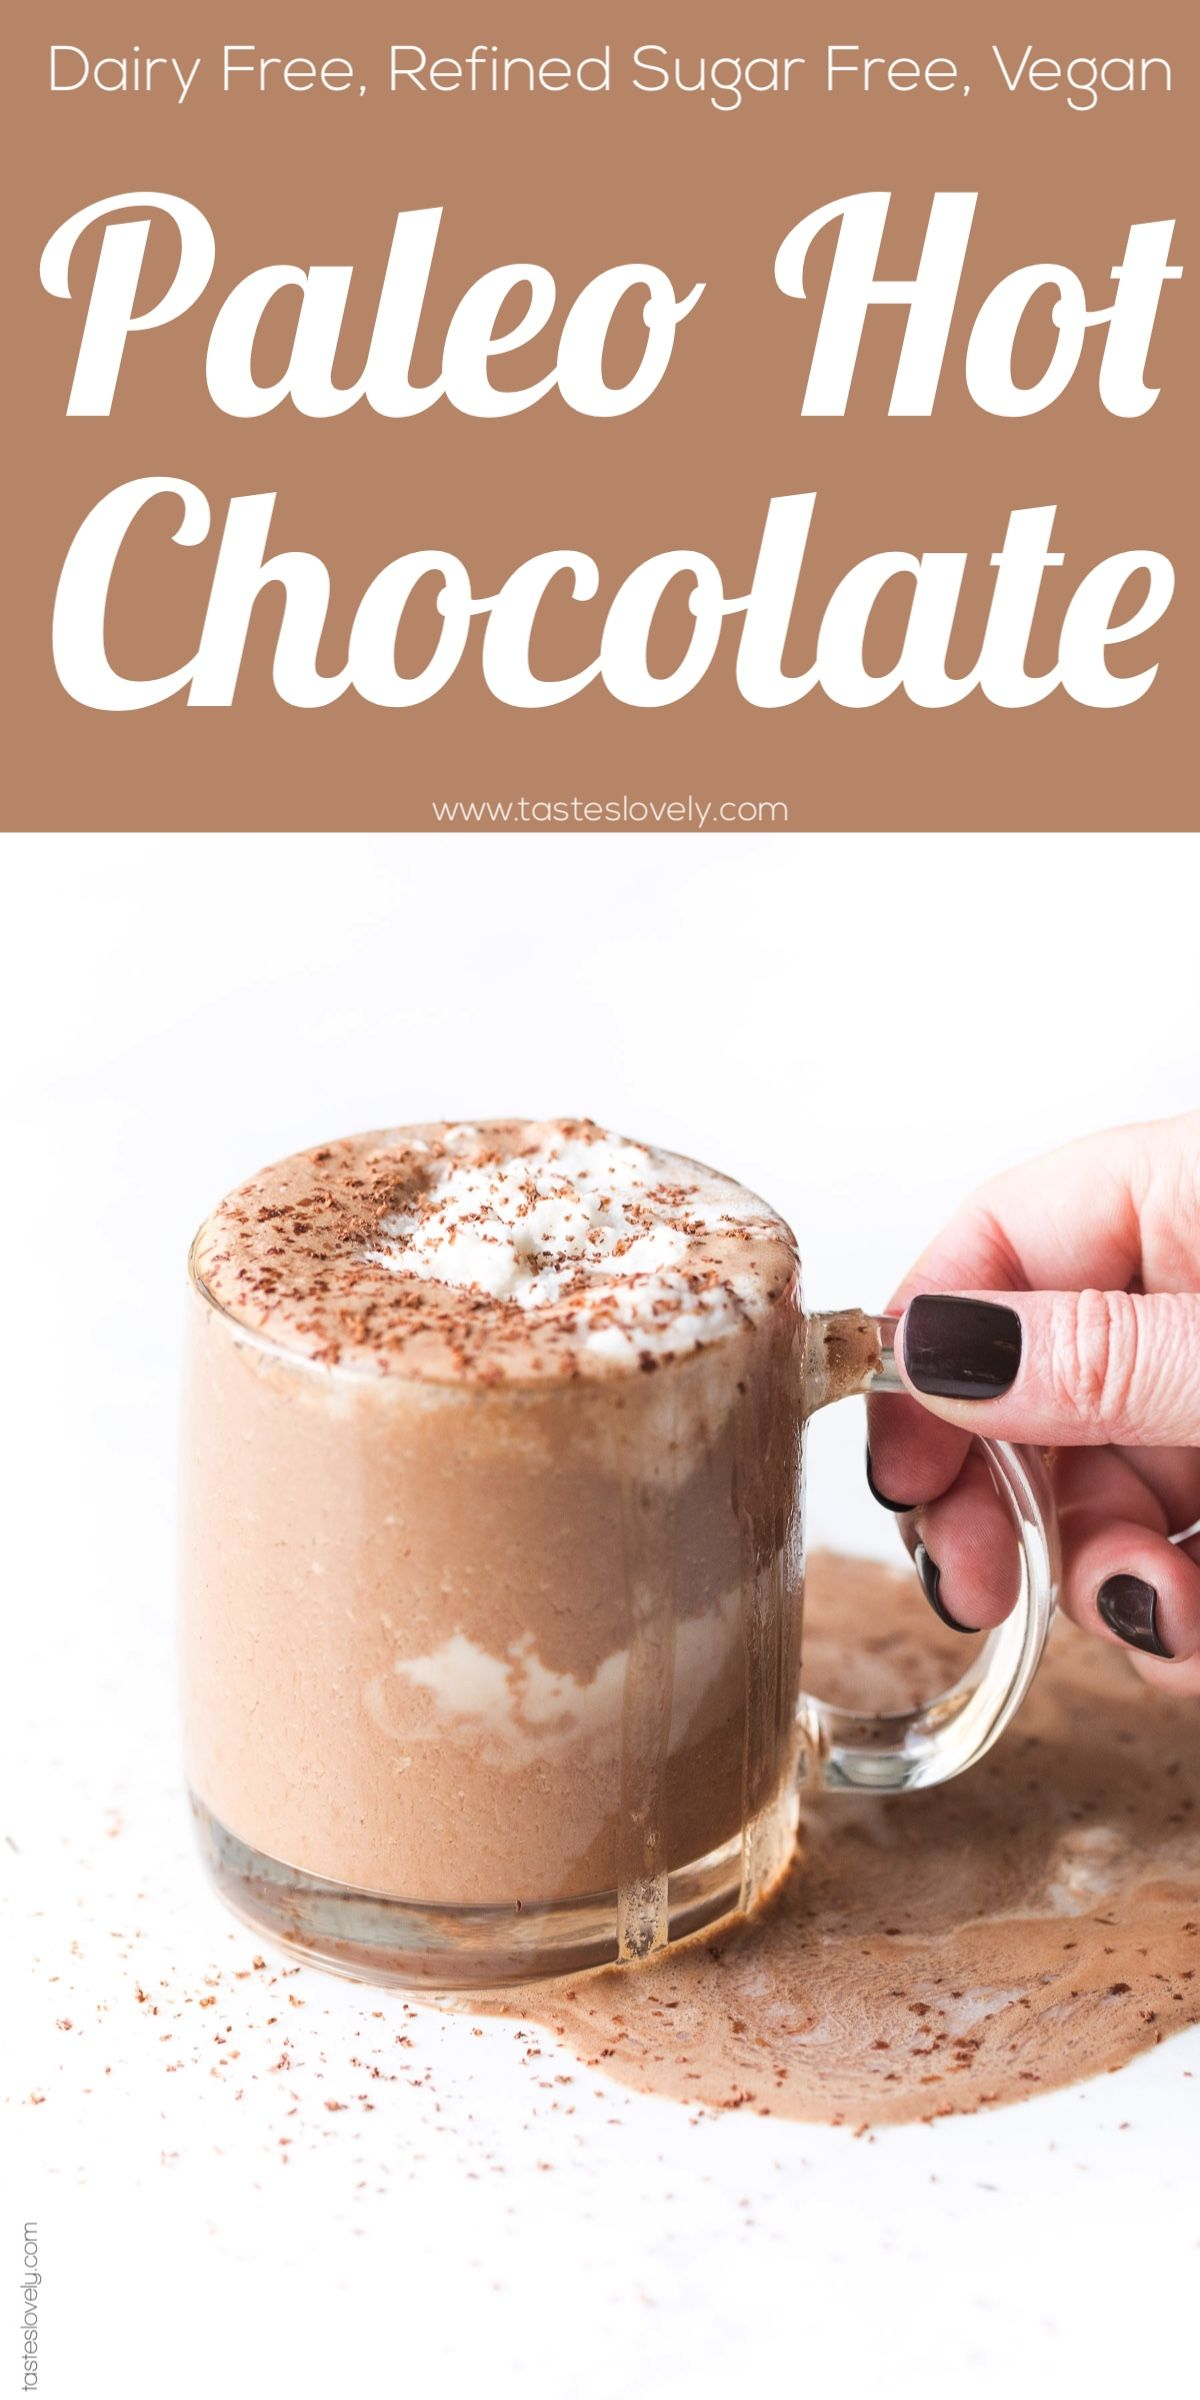 Healthy Paleo Hot Chocolate Made With 5 Ingredients In The Microwave With Almond Milk And Paleo Hot Chocolate Healthy Hot Chocolate Sugar Free Hot Chocolate